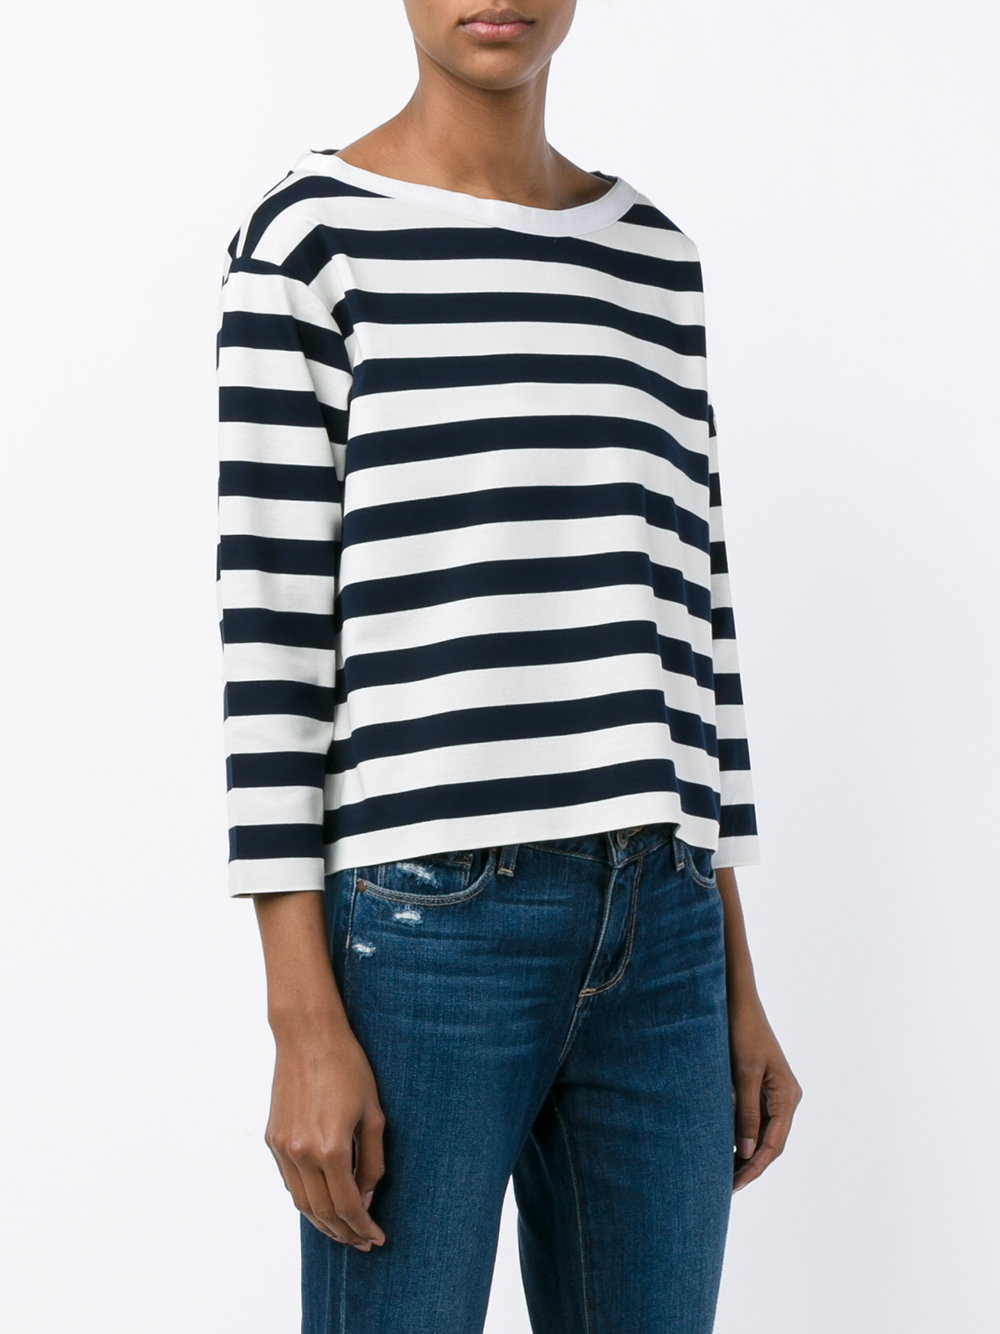 Discover our range of stylish men's striped t-shirts with ASOS. Shop from a range of brands and different styles for striped t-shirts and long sleeve tops.